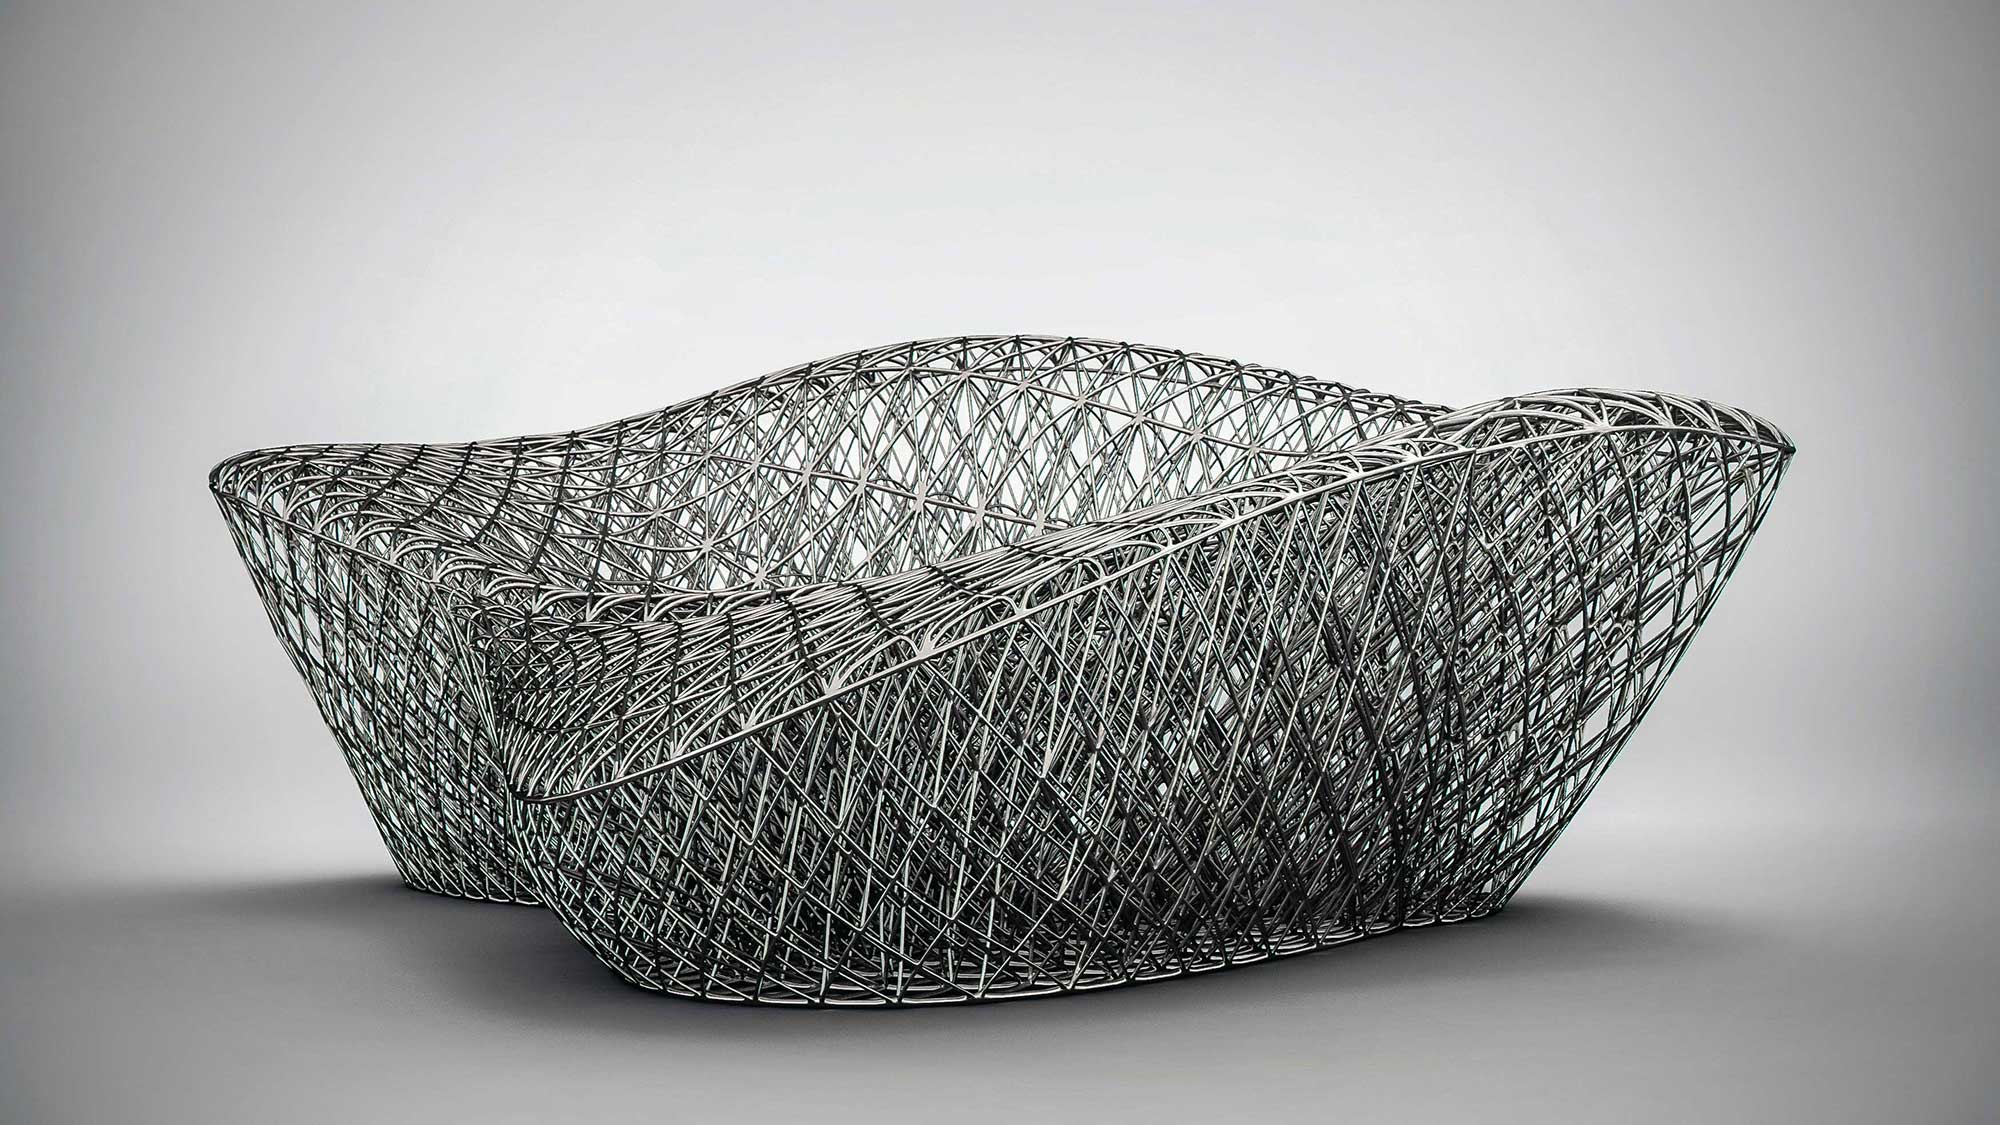 Sofa So Good Is Finnish Janne Kyttanen 39 S Latest 3d Printed